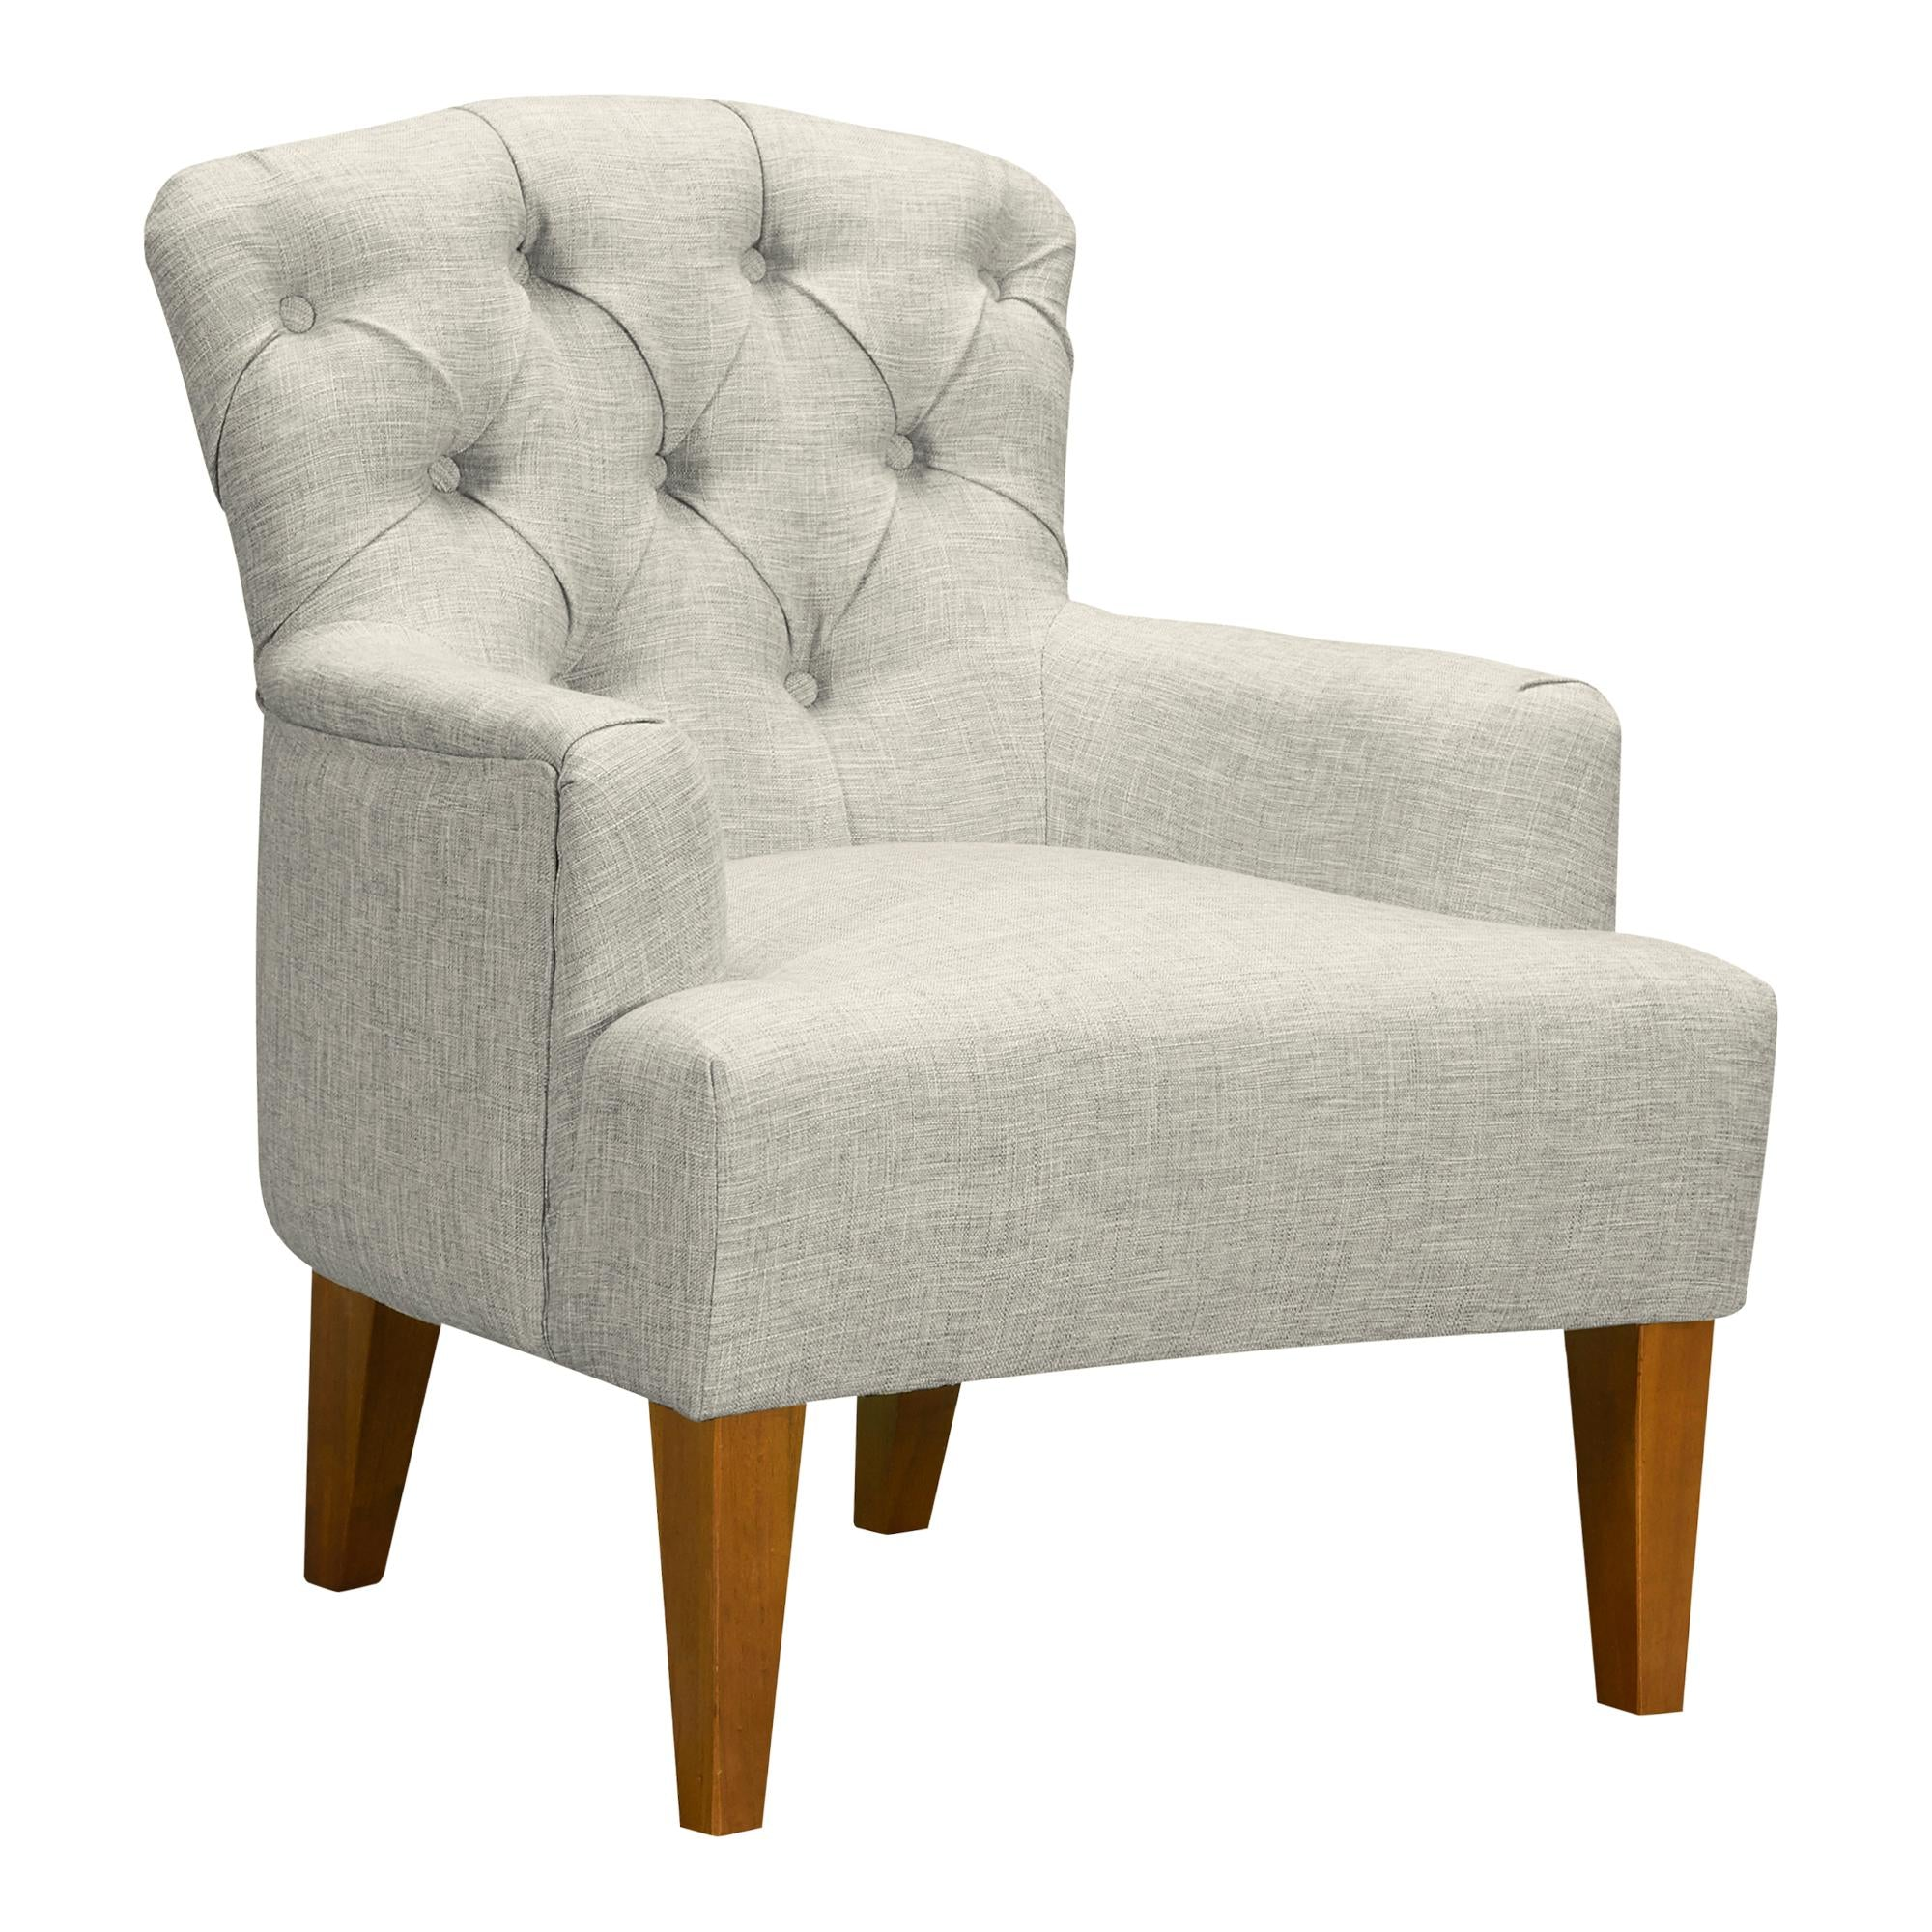 Jewel Mid-Century Accent Chair in Champagne Wood Finish and Beige Fabric